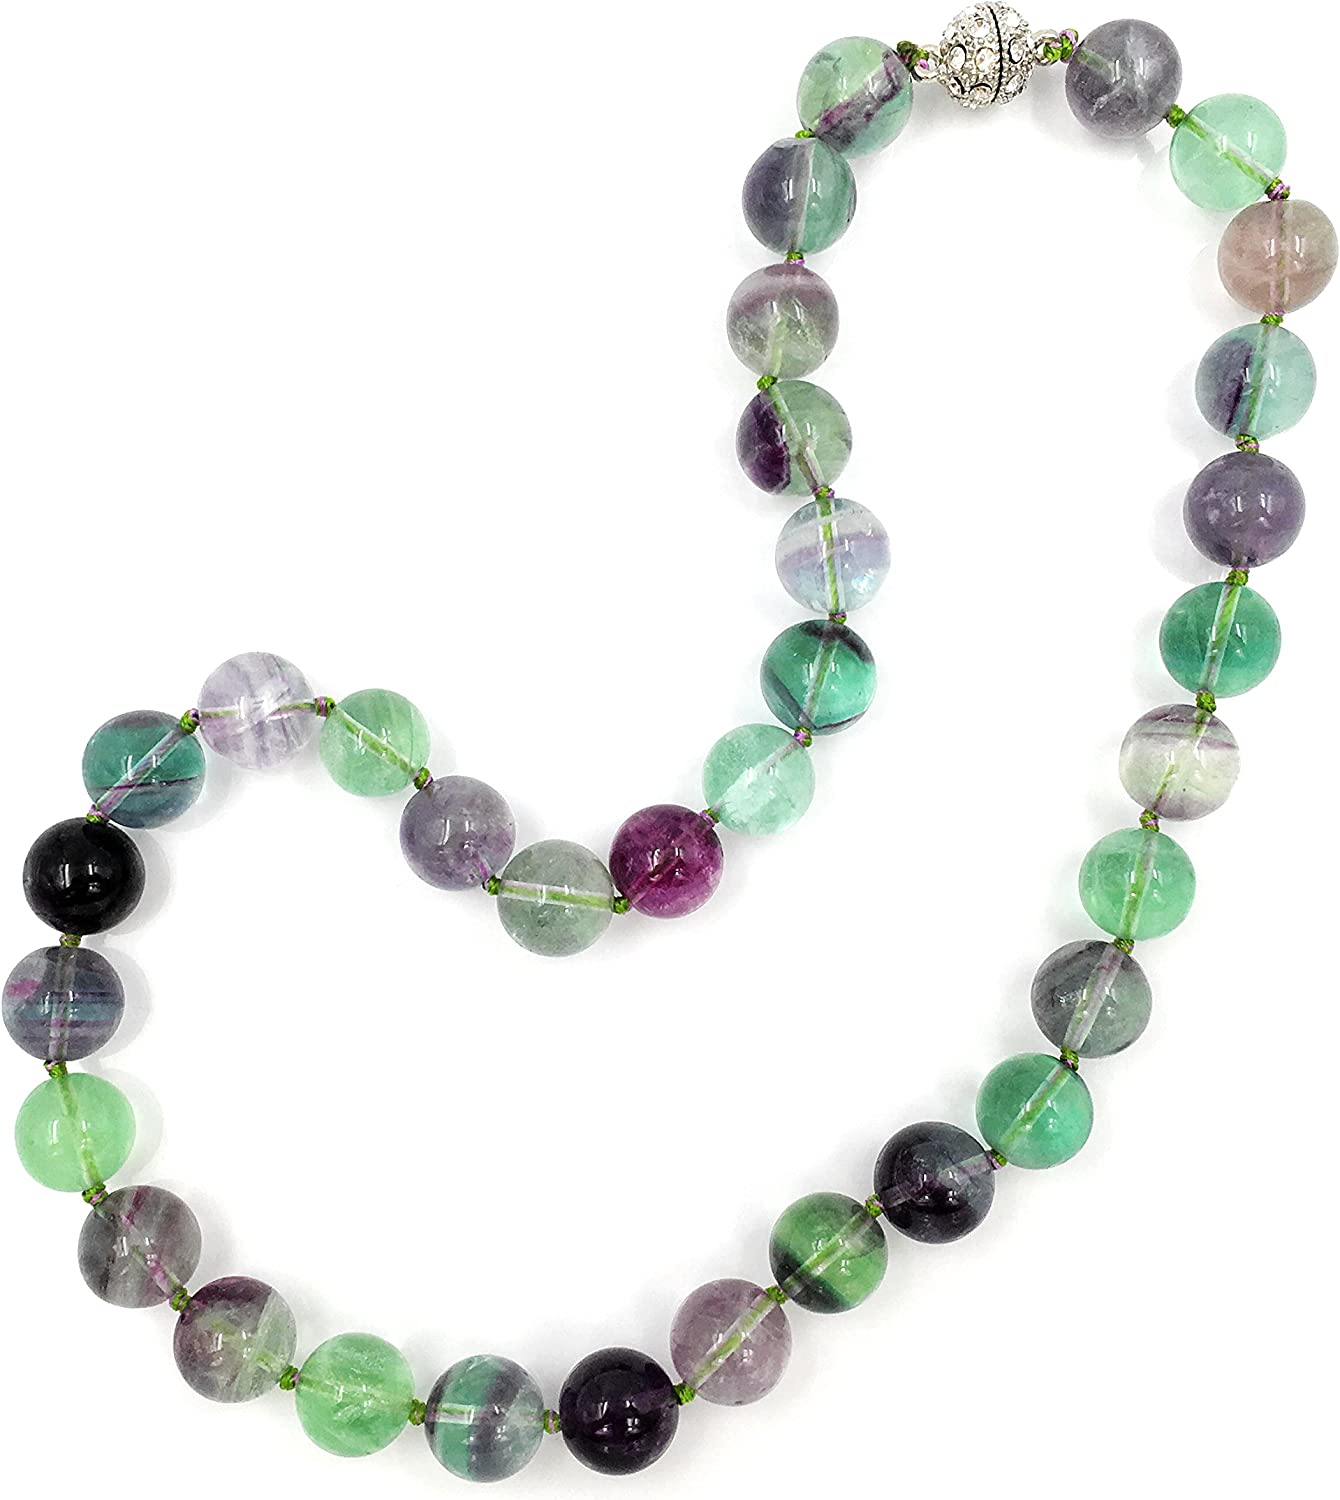 GREEN CRYSTAL PENDANT with magnetic clasp